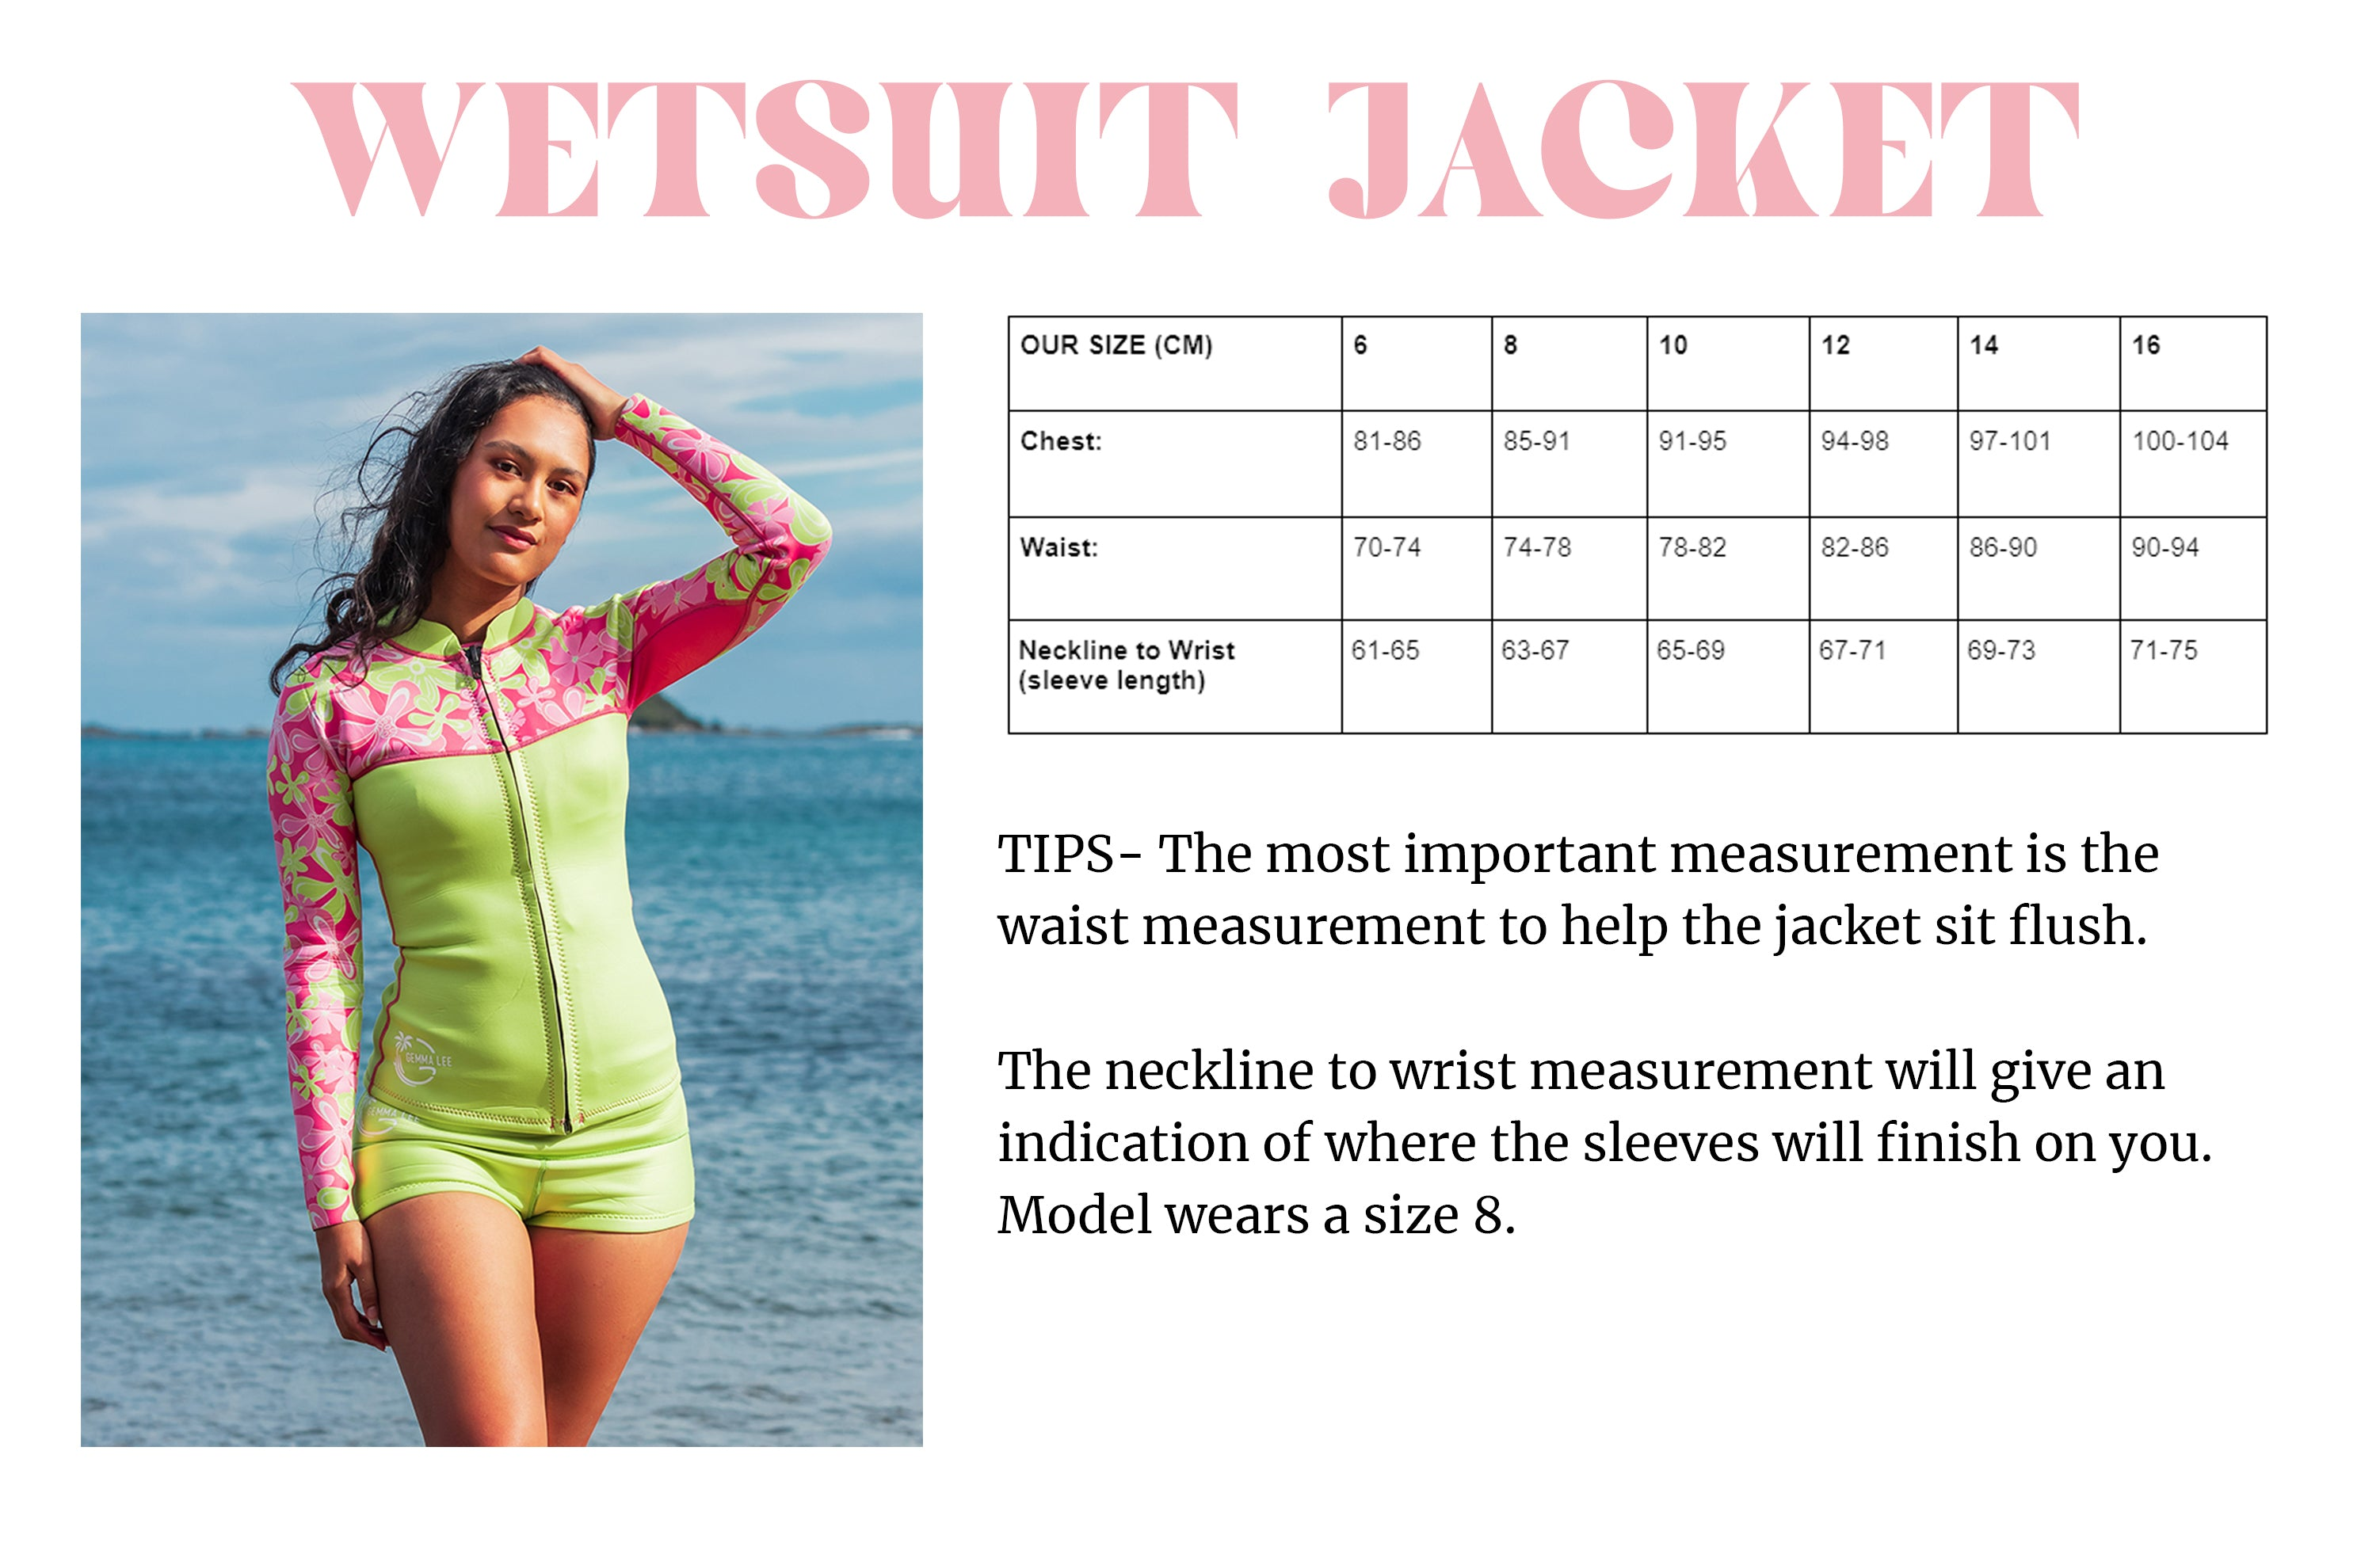 womens_wetsuit_jacket_size_guide